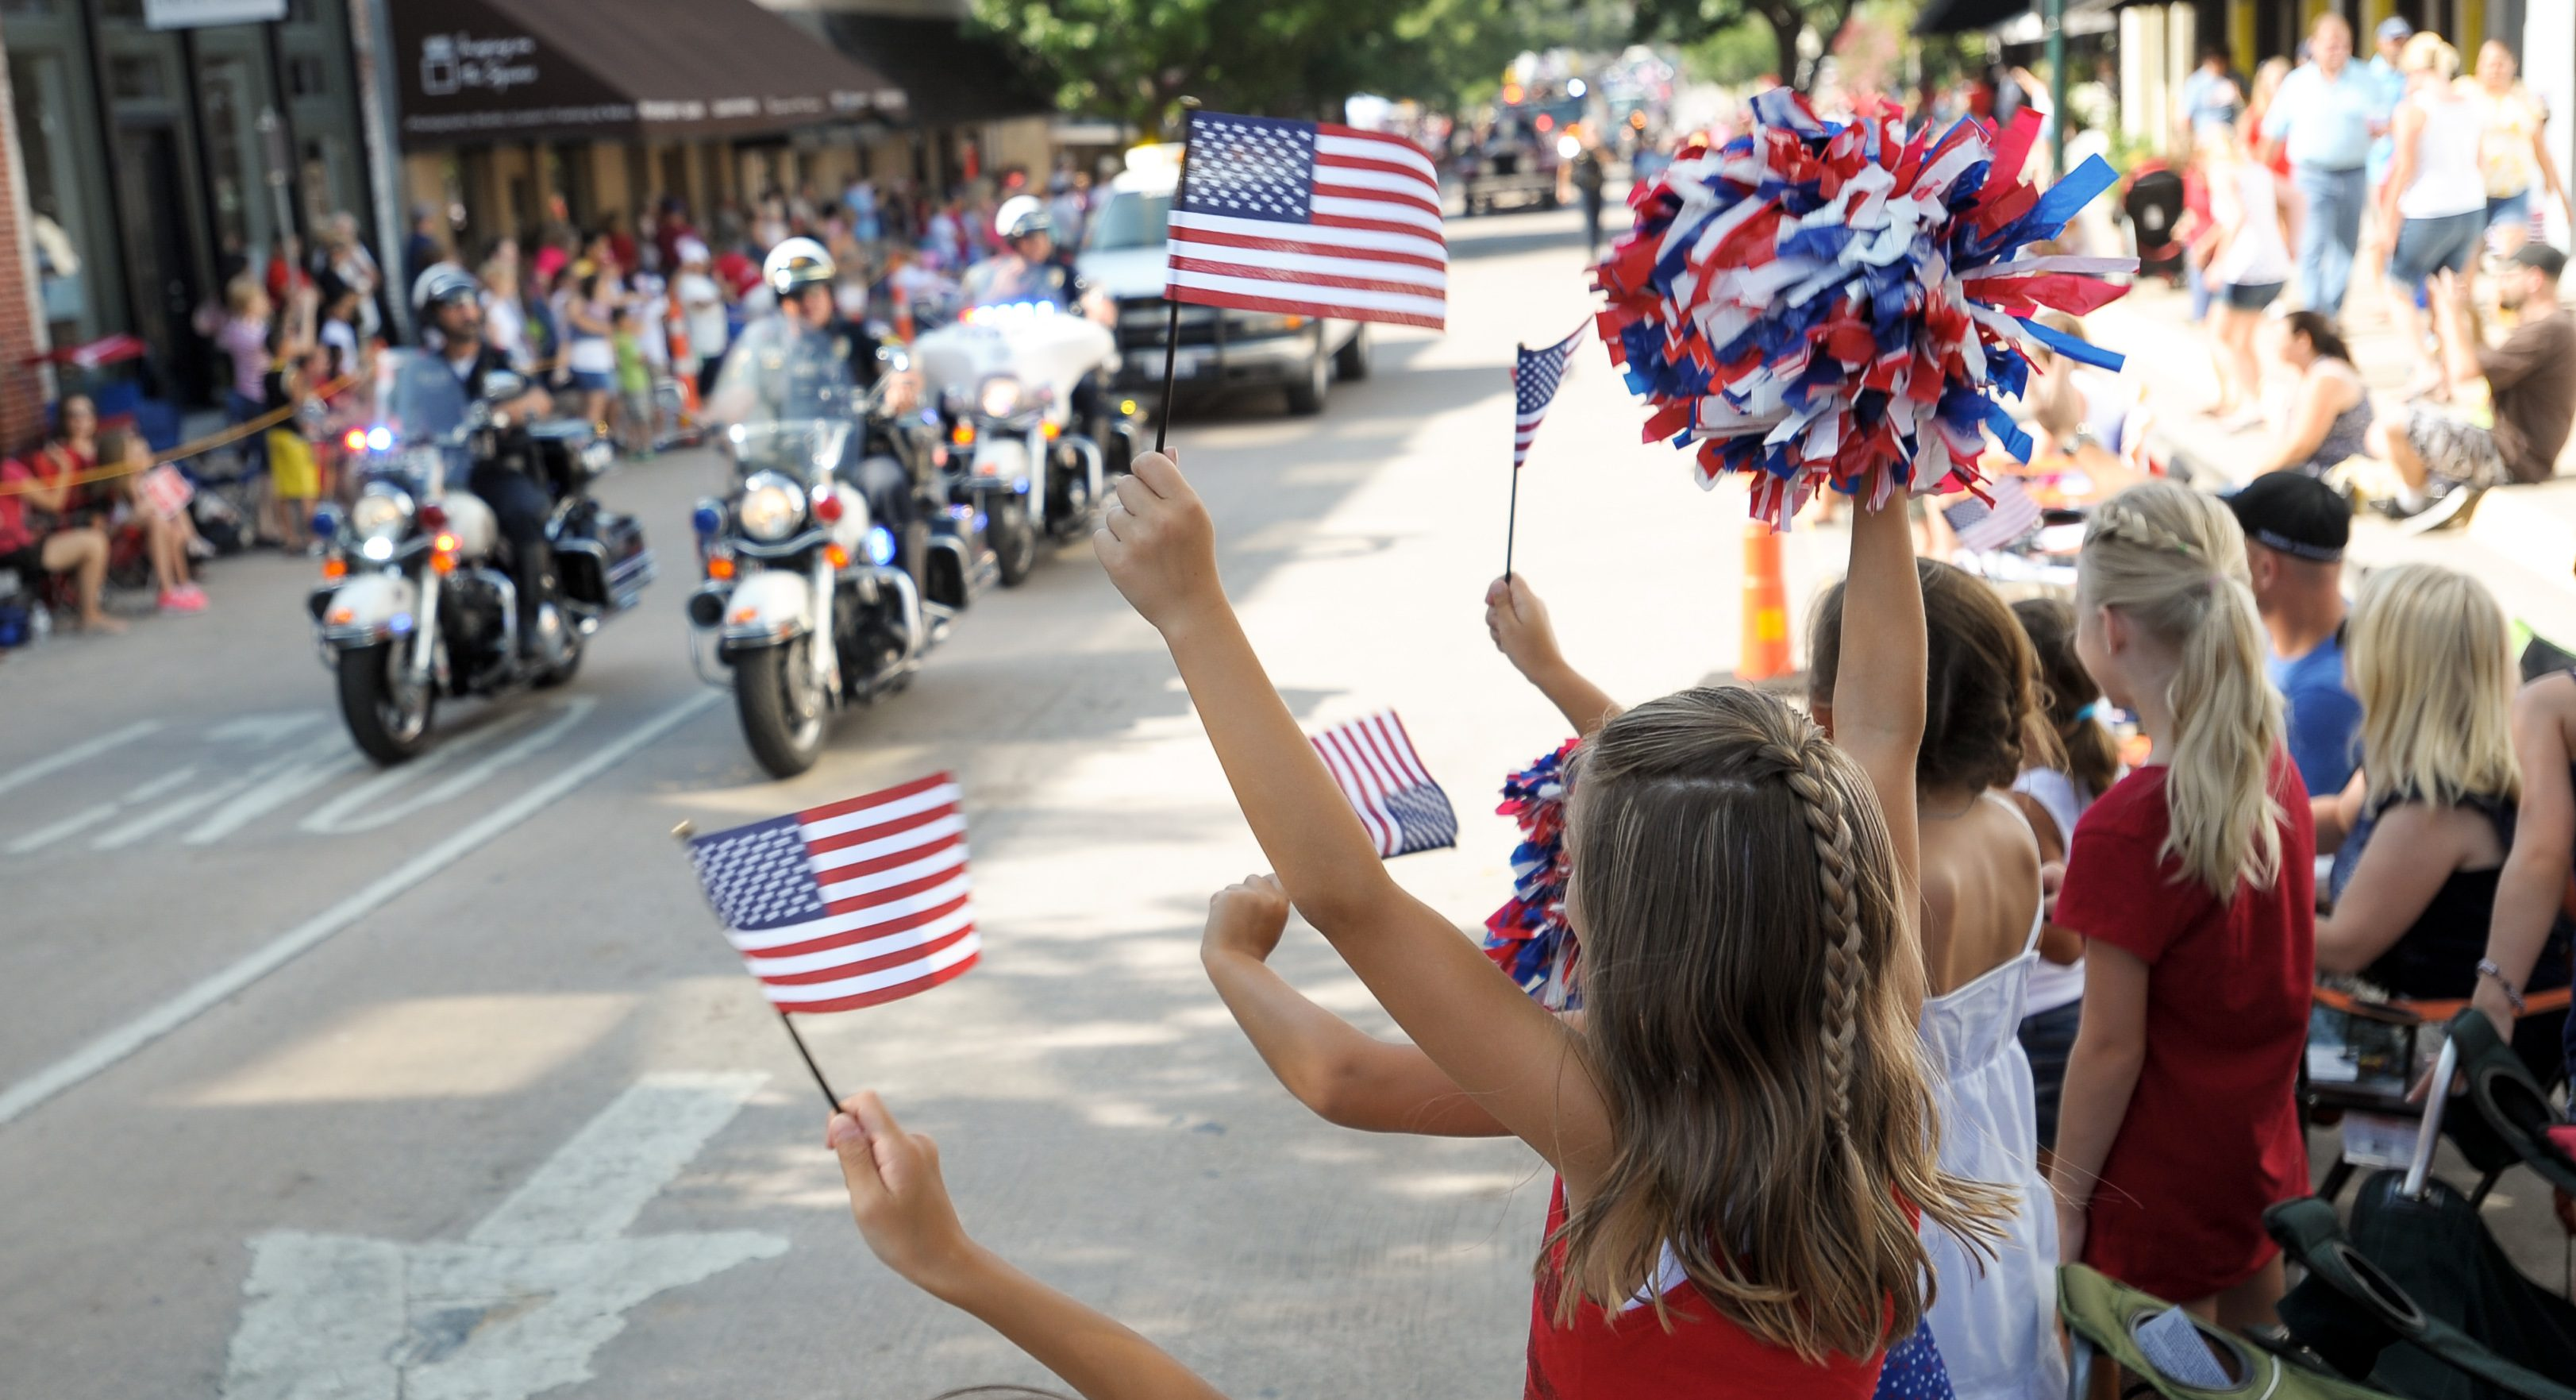 annual 4th of July parade in the McKinney, Texas town square.